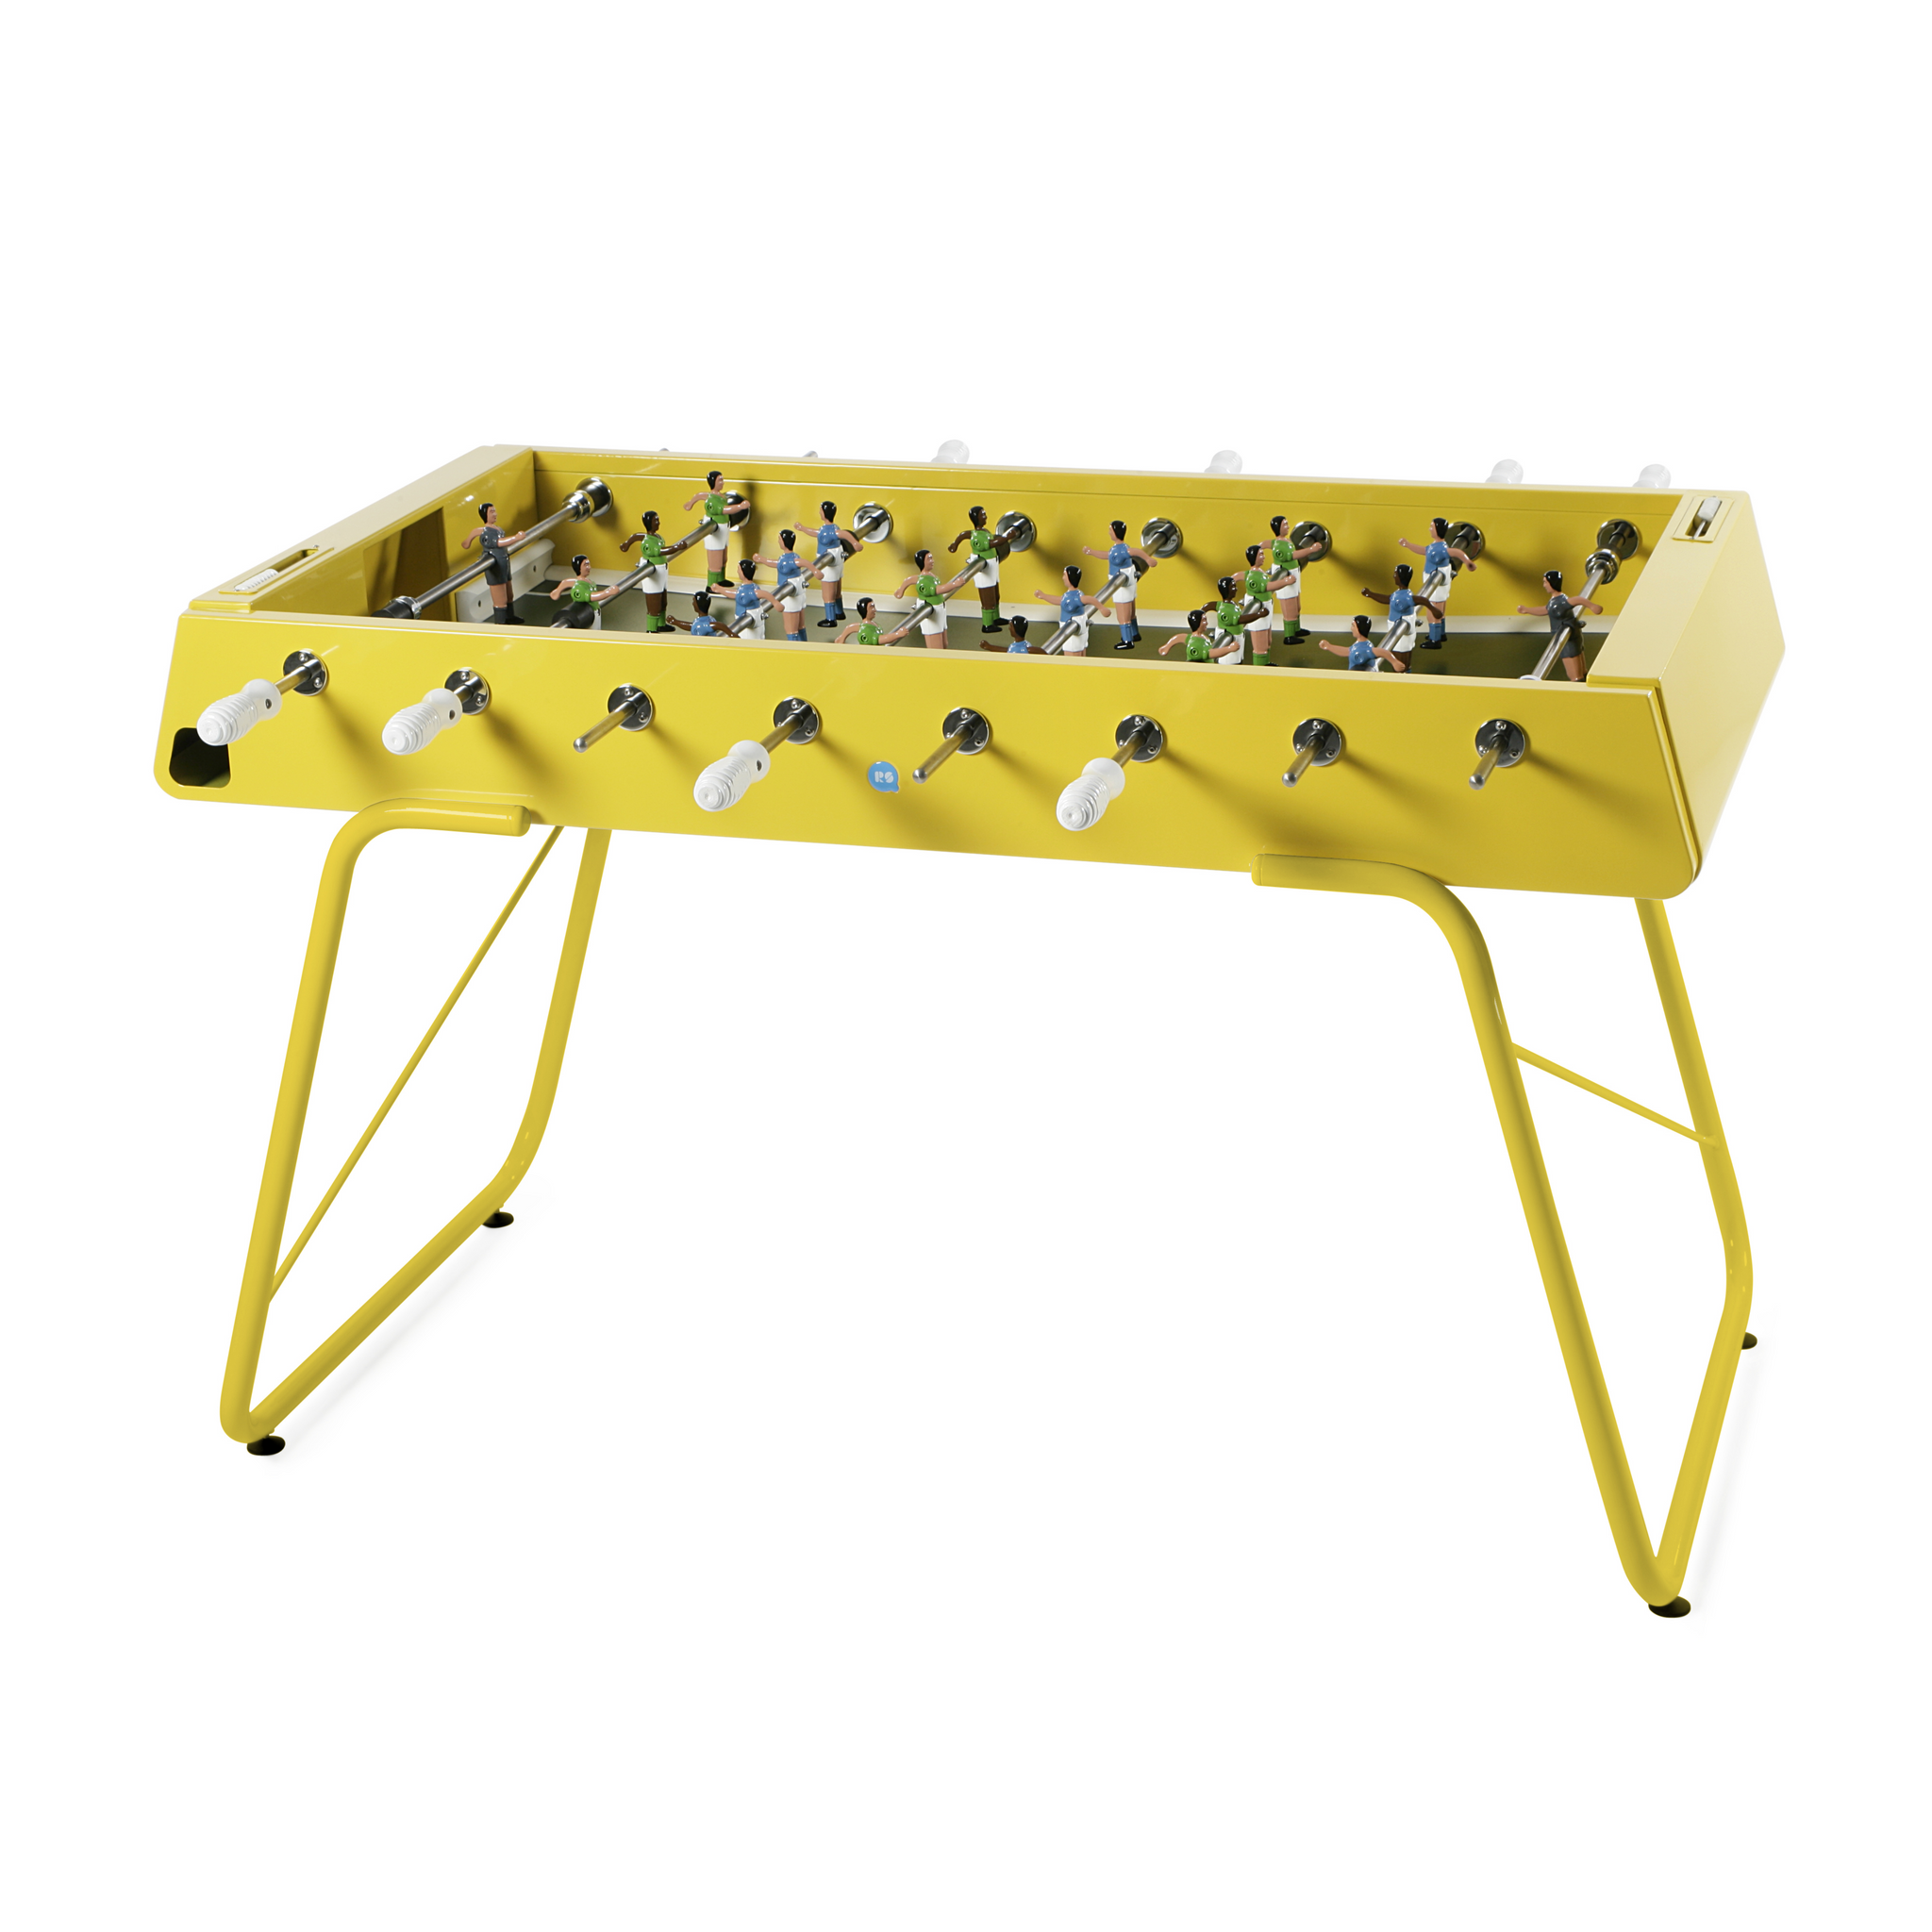 RS3 Foosball Table in Yellow